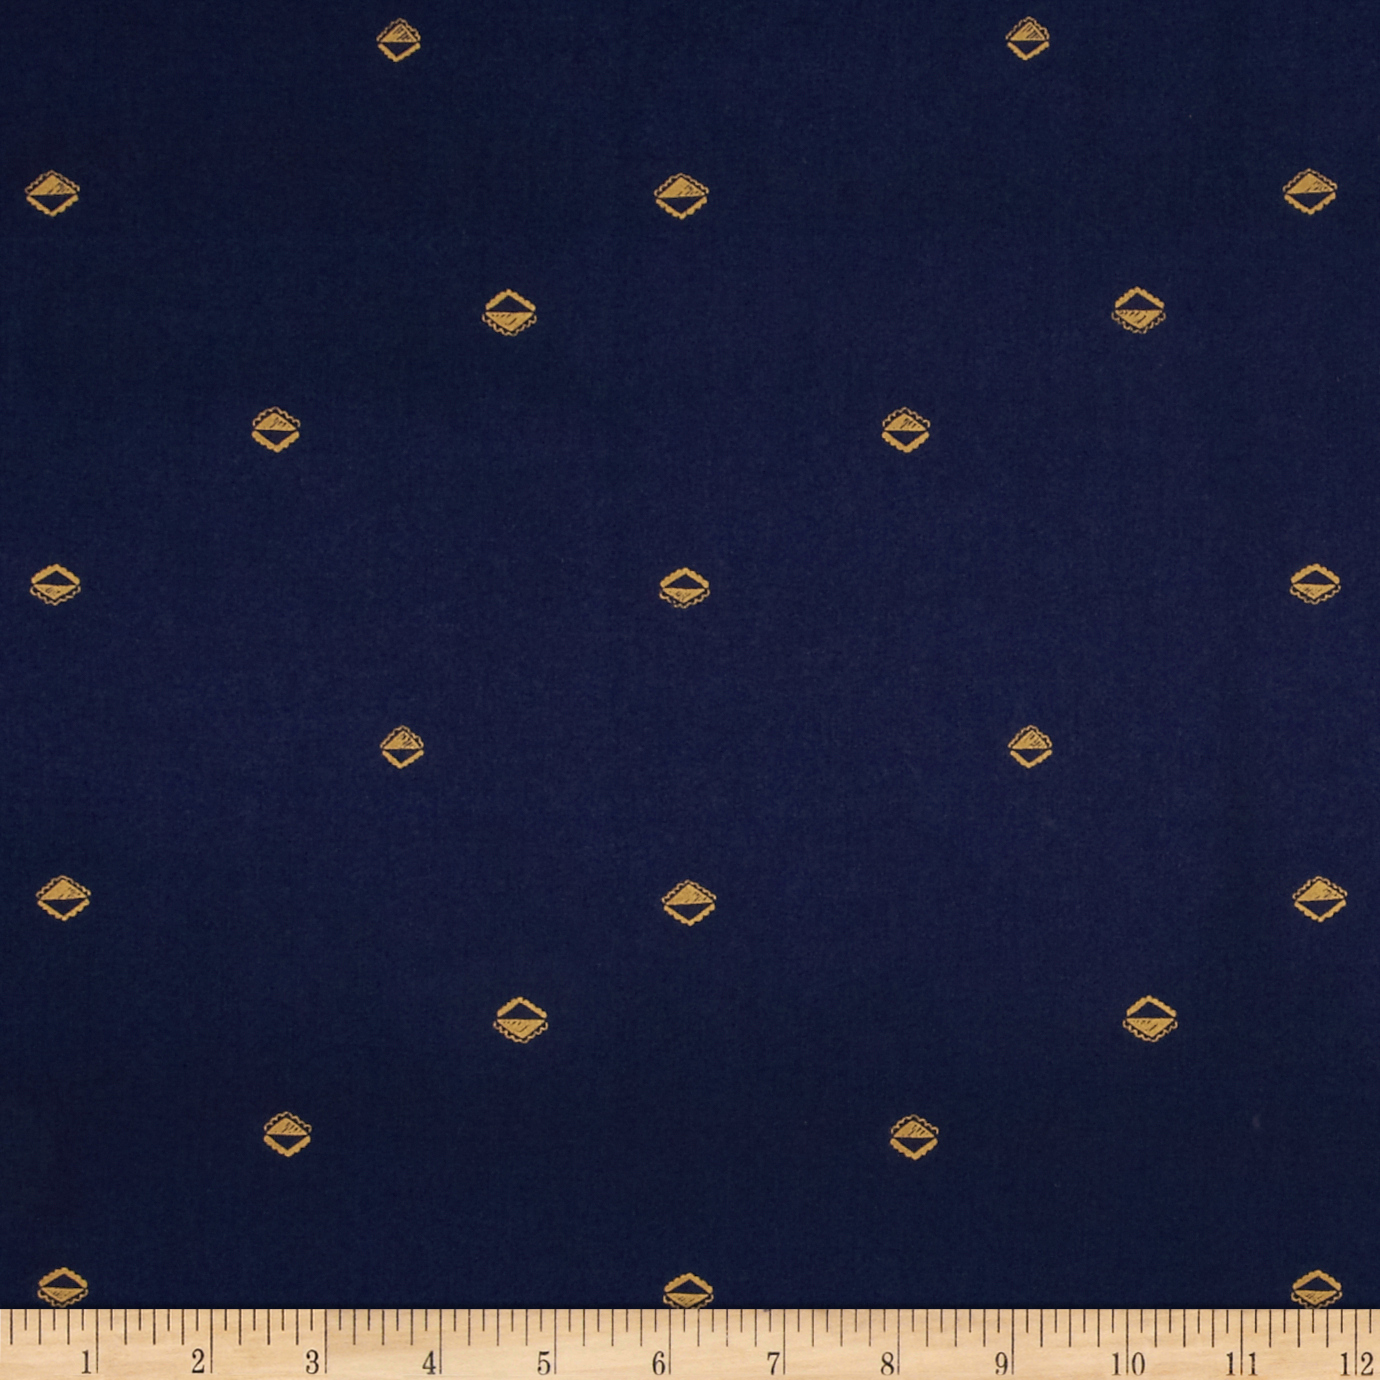 Cotton + Steel Mesa Lawn Sunrise Navy Fabric by Cotton & Steel in USA